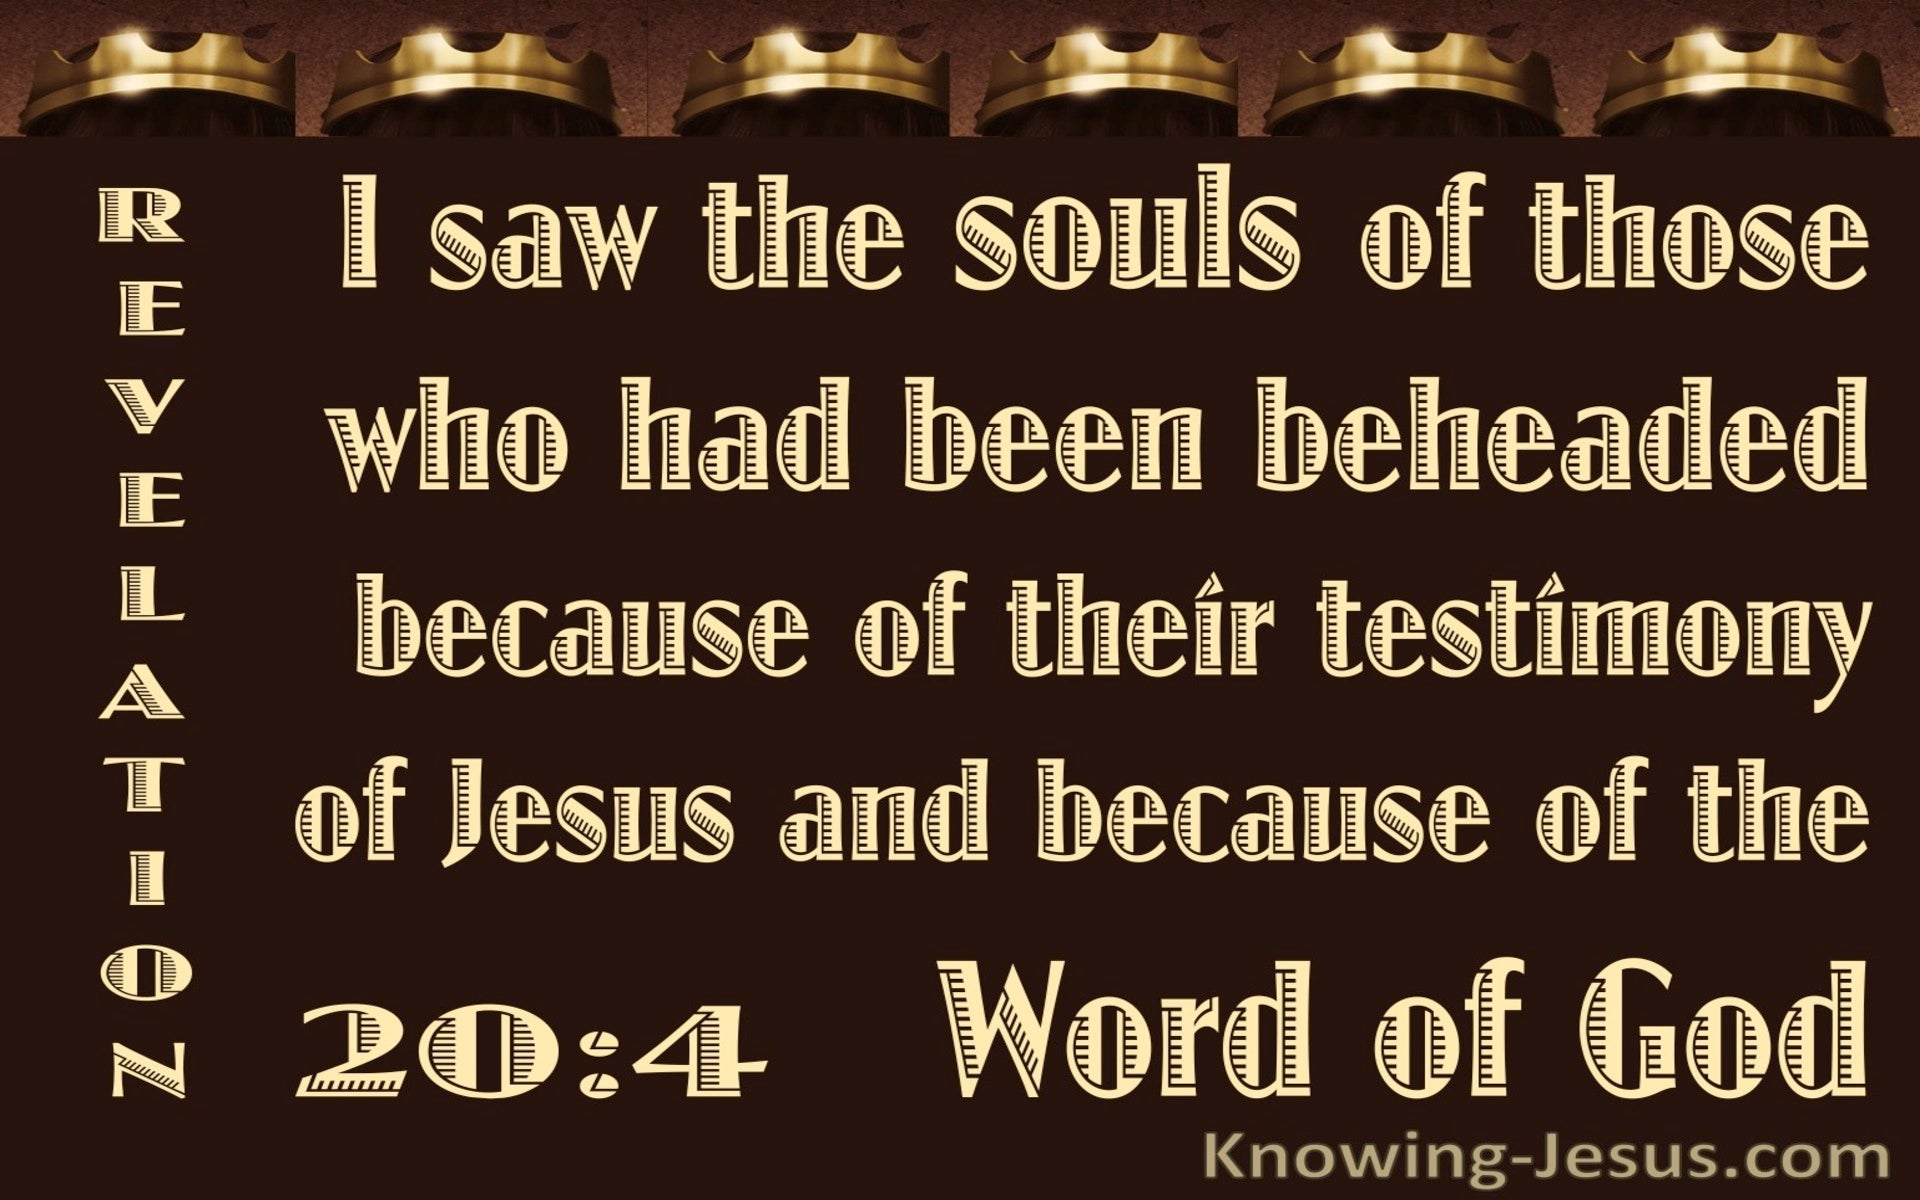 Revelation 20:4 The Souls Of Those Beheaded For Their Testimony (yellow)